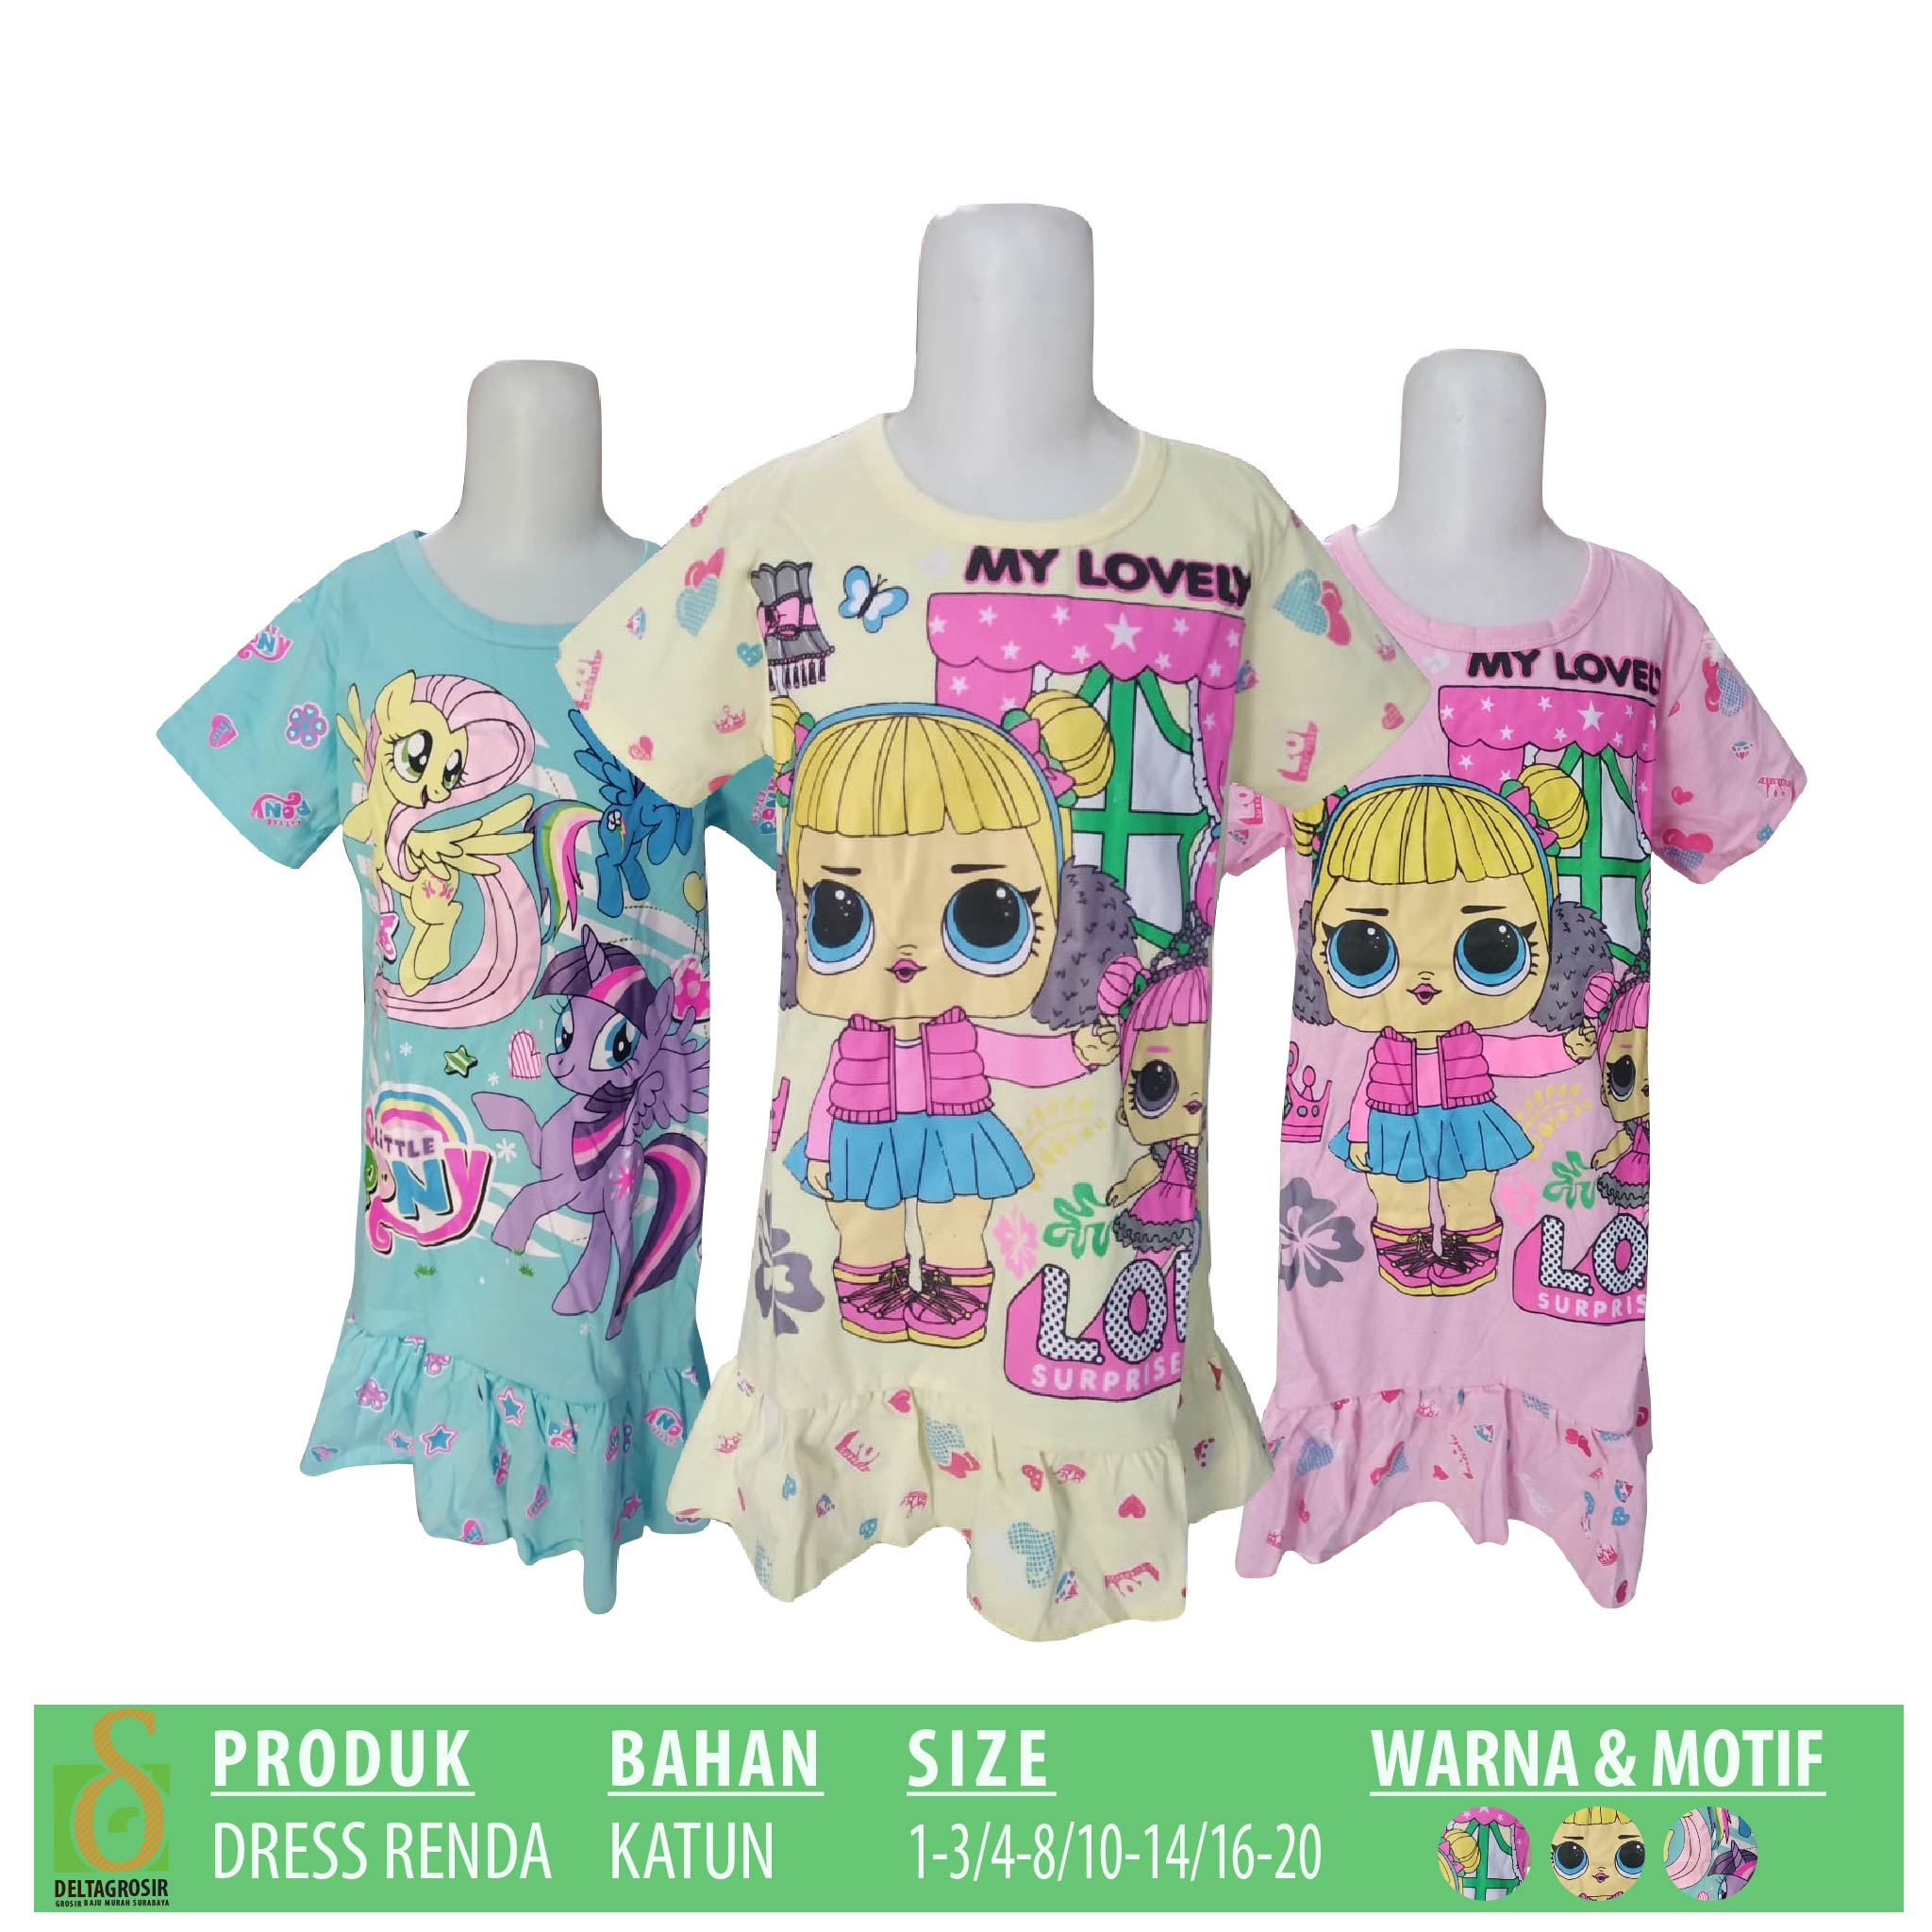 Distributor Dress Renda Anak Murah 19ribuan